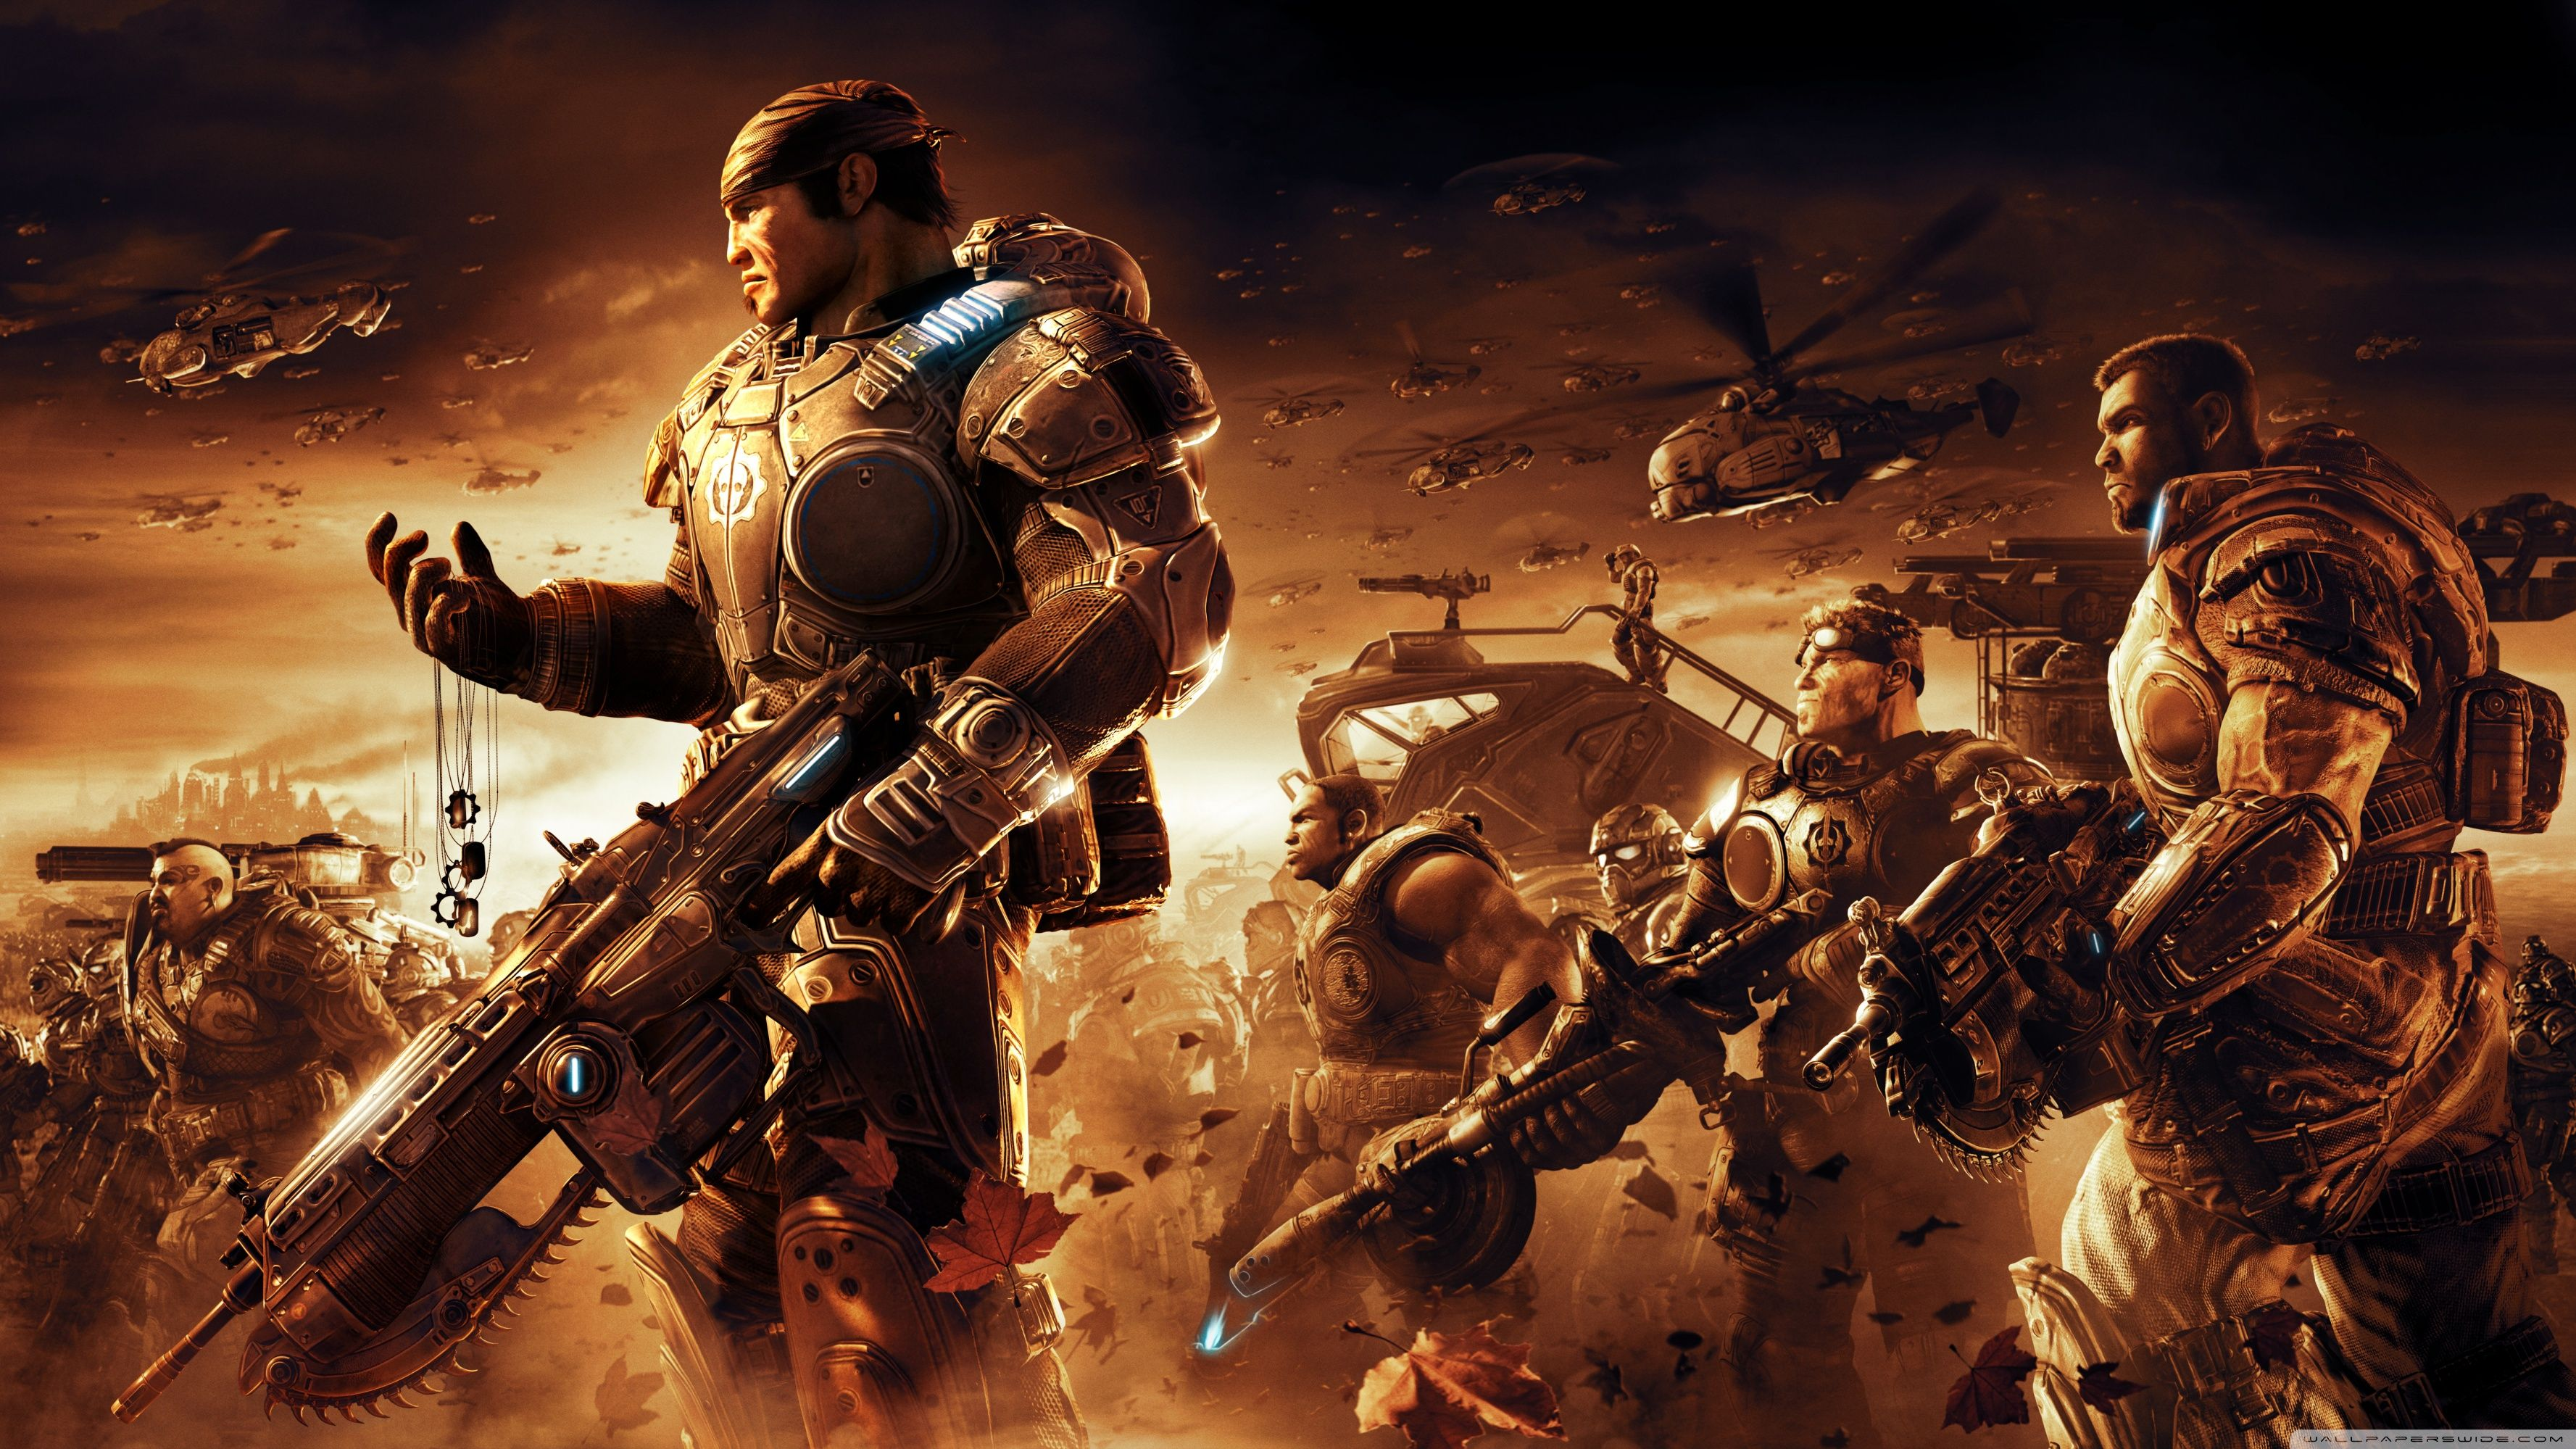 Gears Of War Wallpapers Top Free Gears Of War Backgrounds